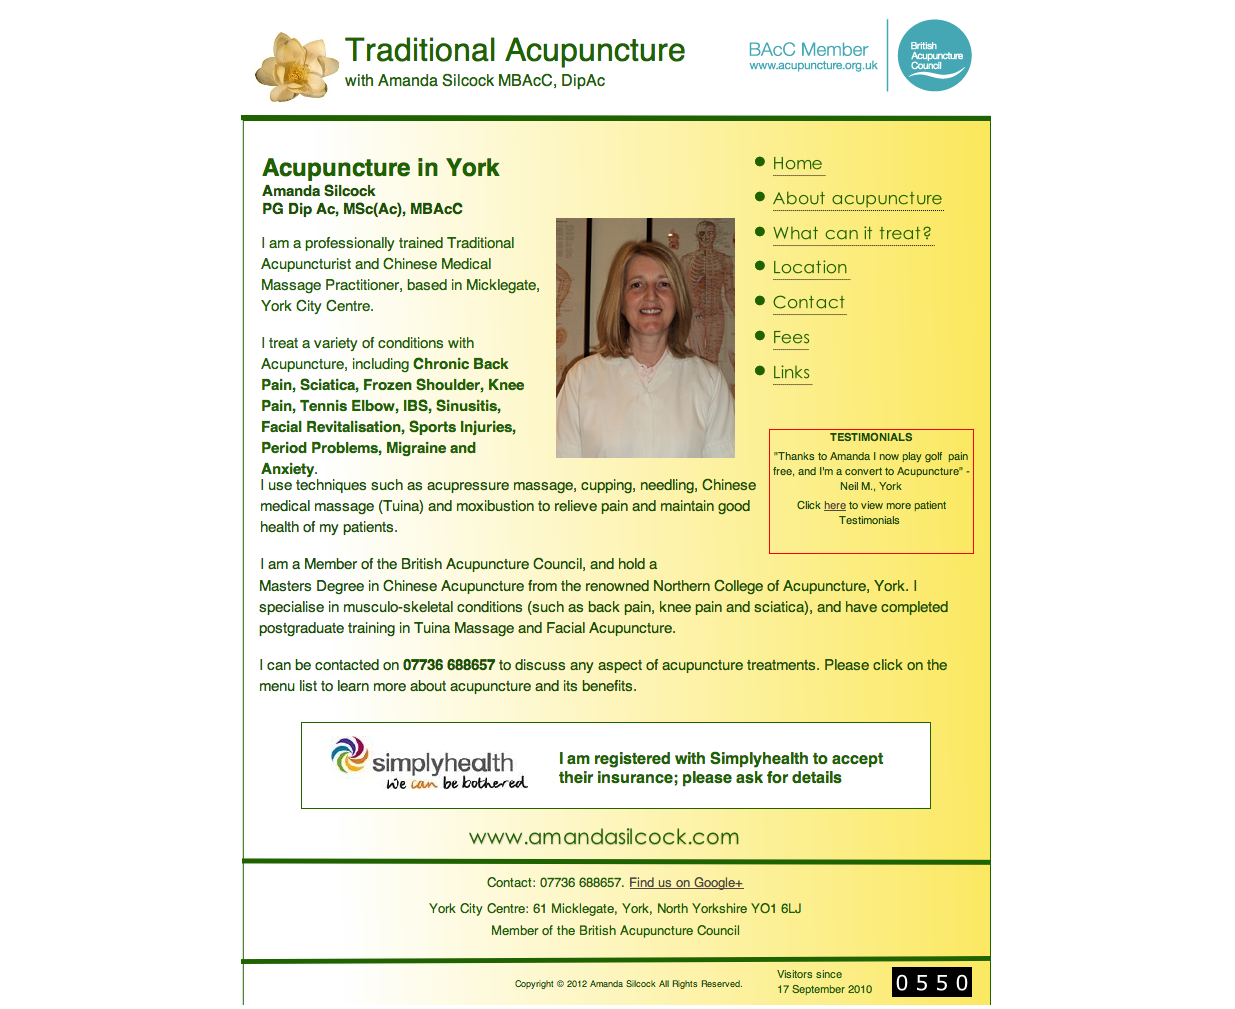 Amanda Silcock - Acupuncture in York